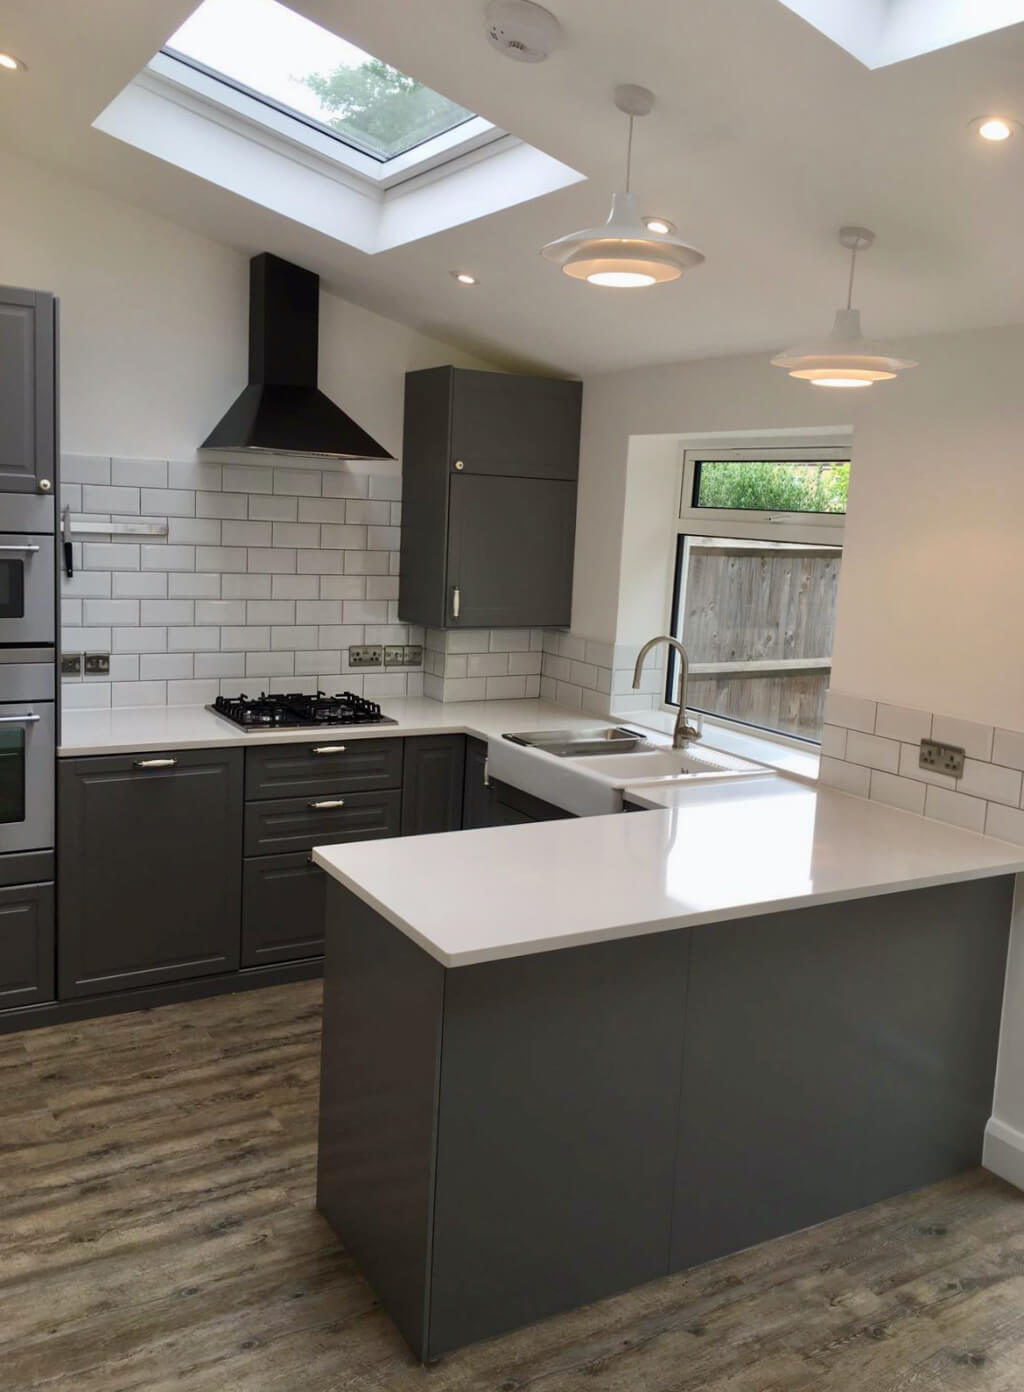 King's Construction | Ground Floor Extension -- Kitchen | Lee Green, South London